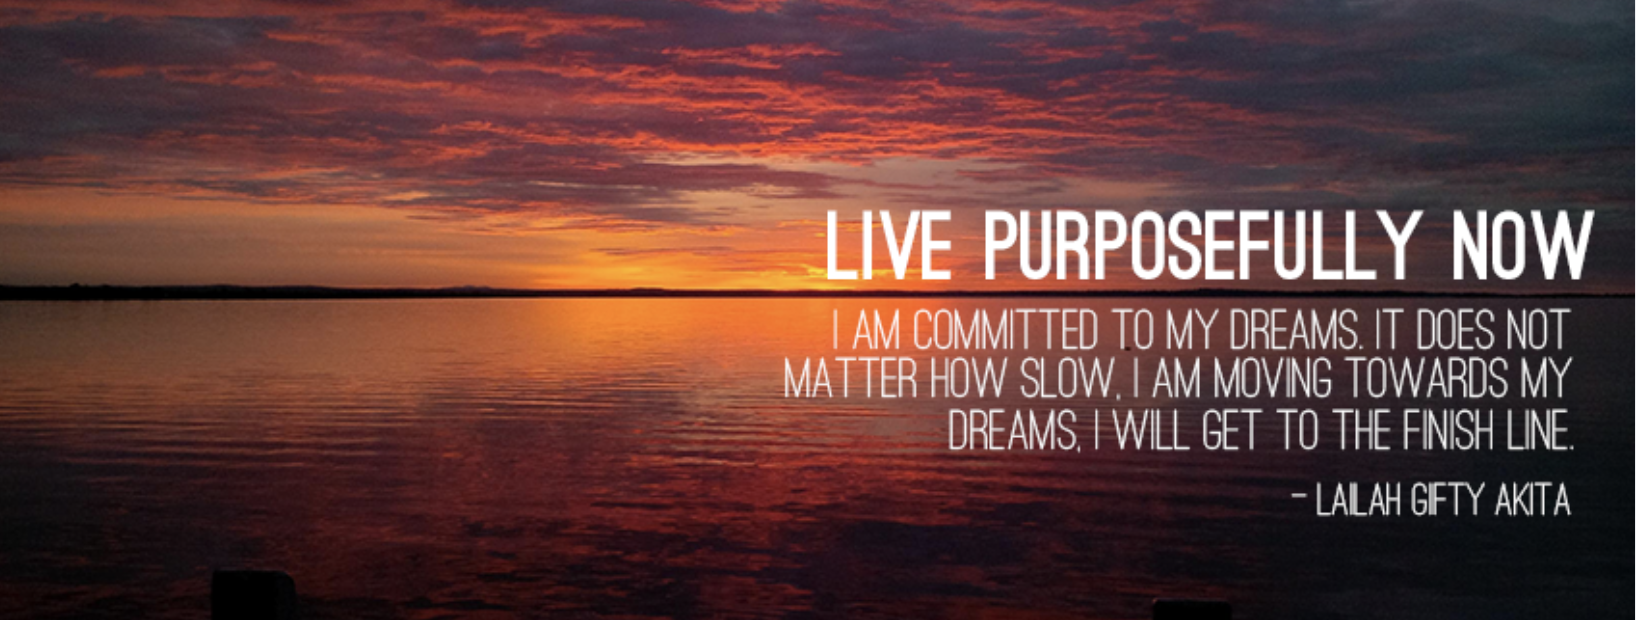 Live Purposefully Now Facebook Page Image